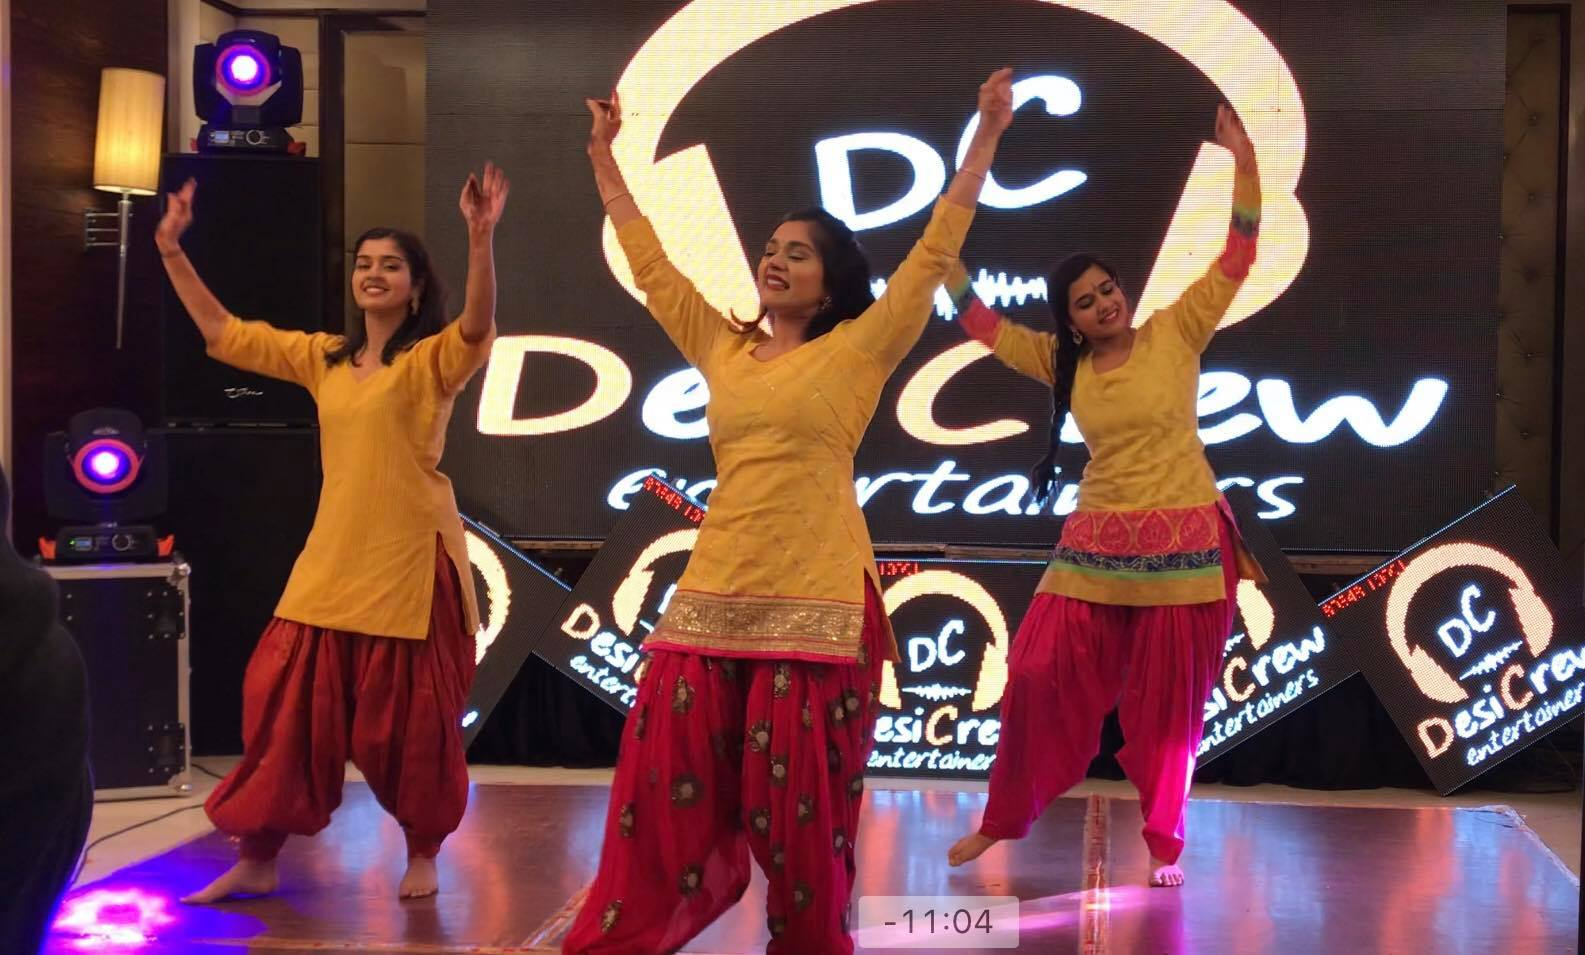 performers during their dance performance